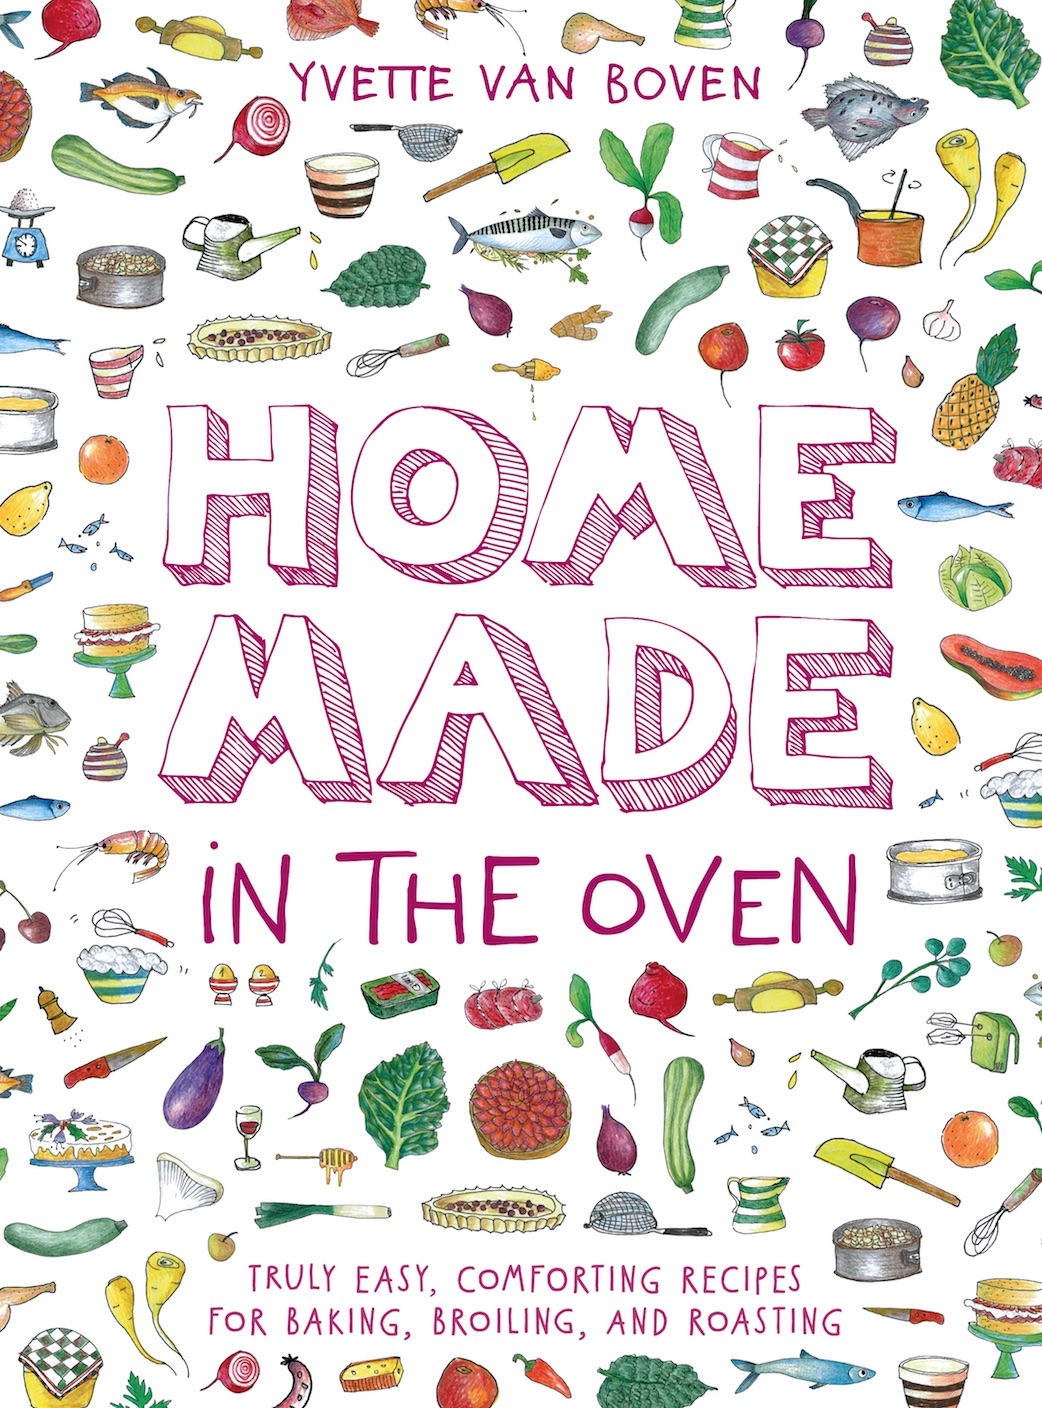 Home Made in the Oven by Yvette van Boven